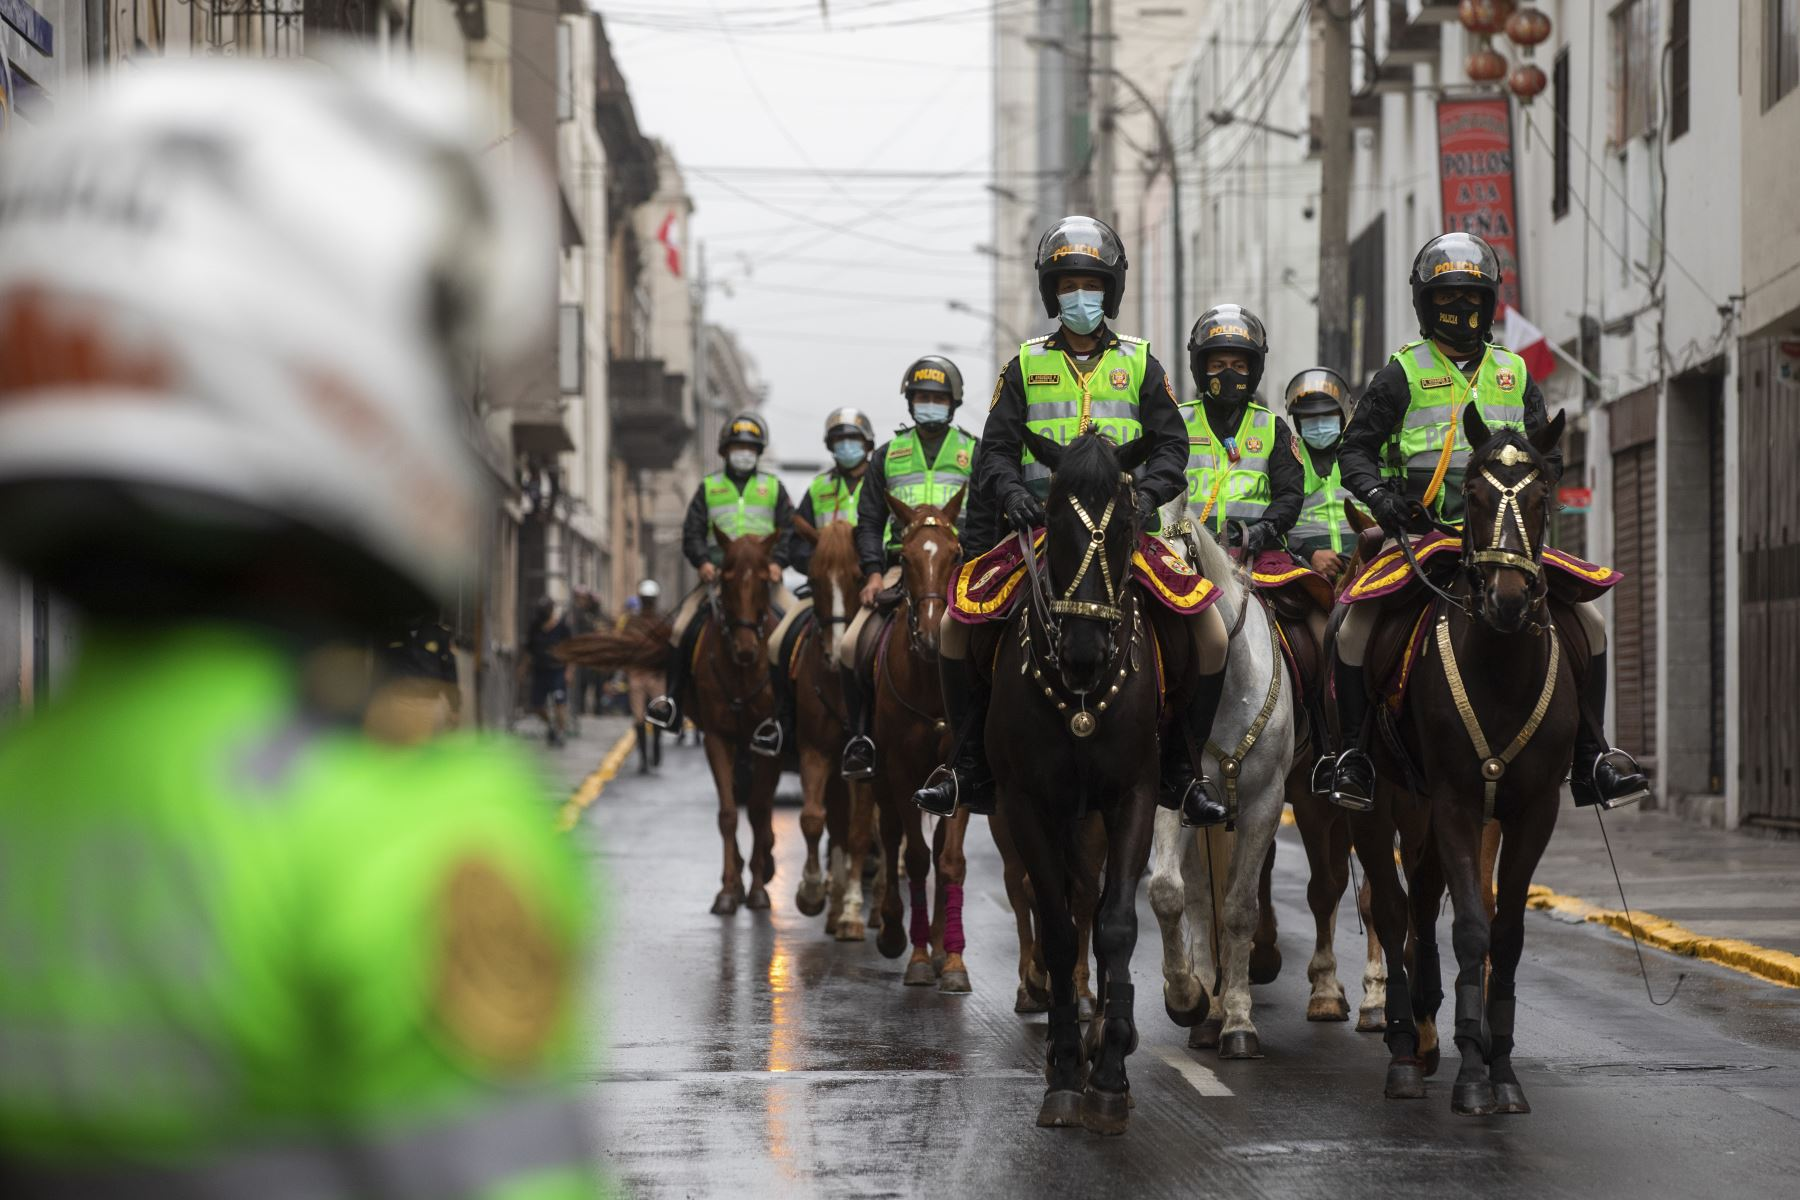 More than 100 members of the operational personnel of the Lima commune, including security guards, inspectors, traffic inspectors and City Services personnel, along with 200 police officers, intervened five blocks of the aforementioned road, from the Huallaga shred to the intersection with the Nicolás de Piérola avenue.  Photo: ANDINA / Municipality of Lima